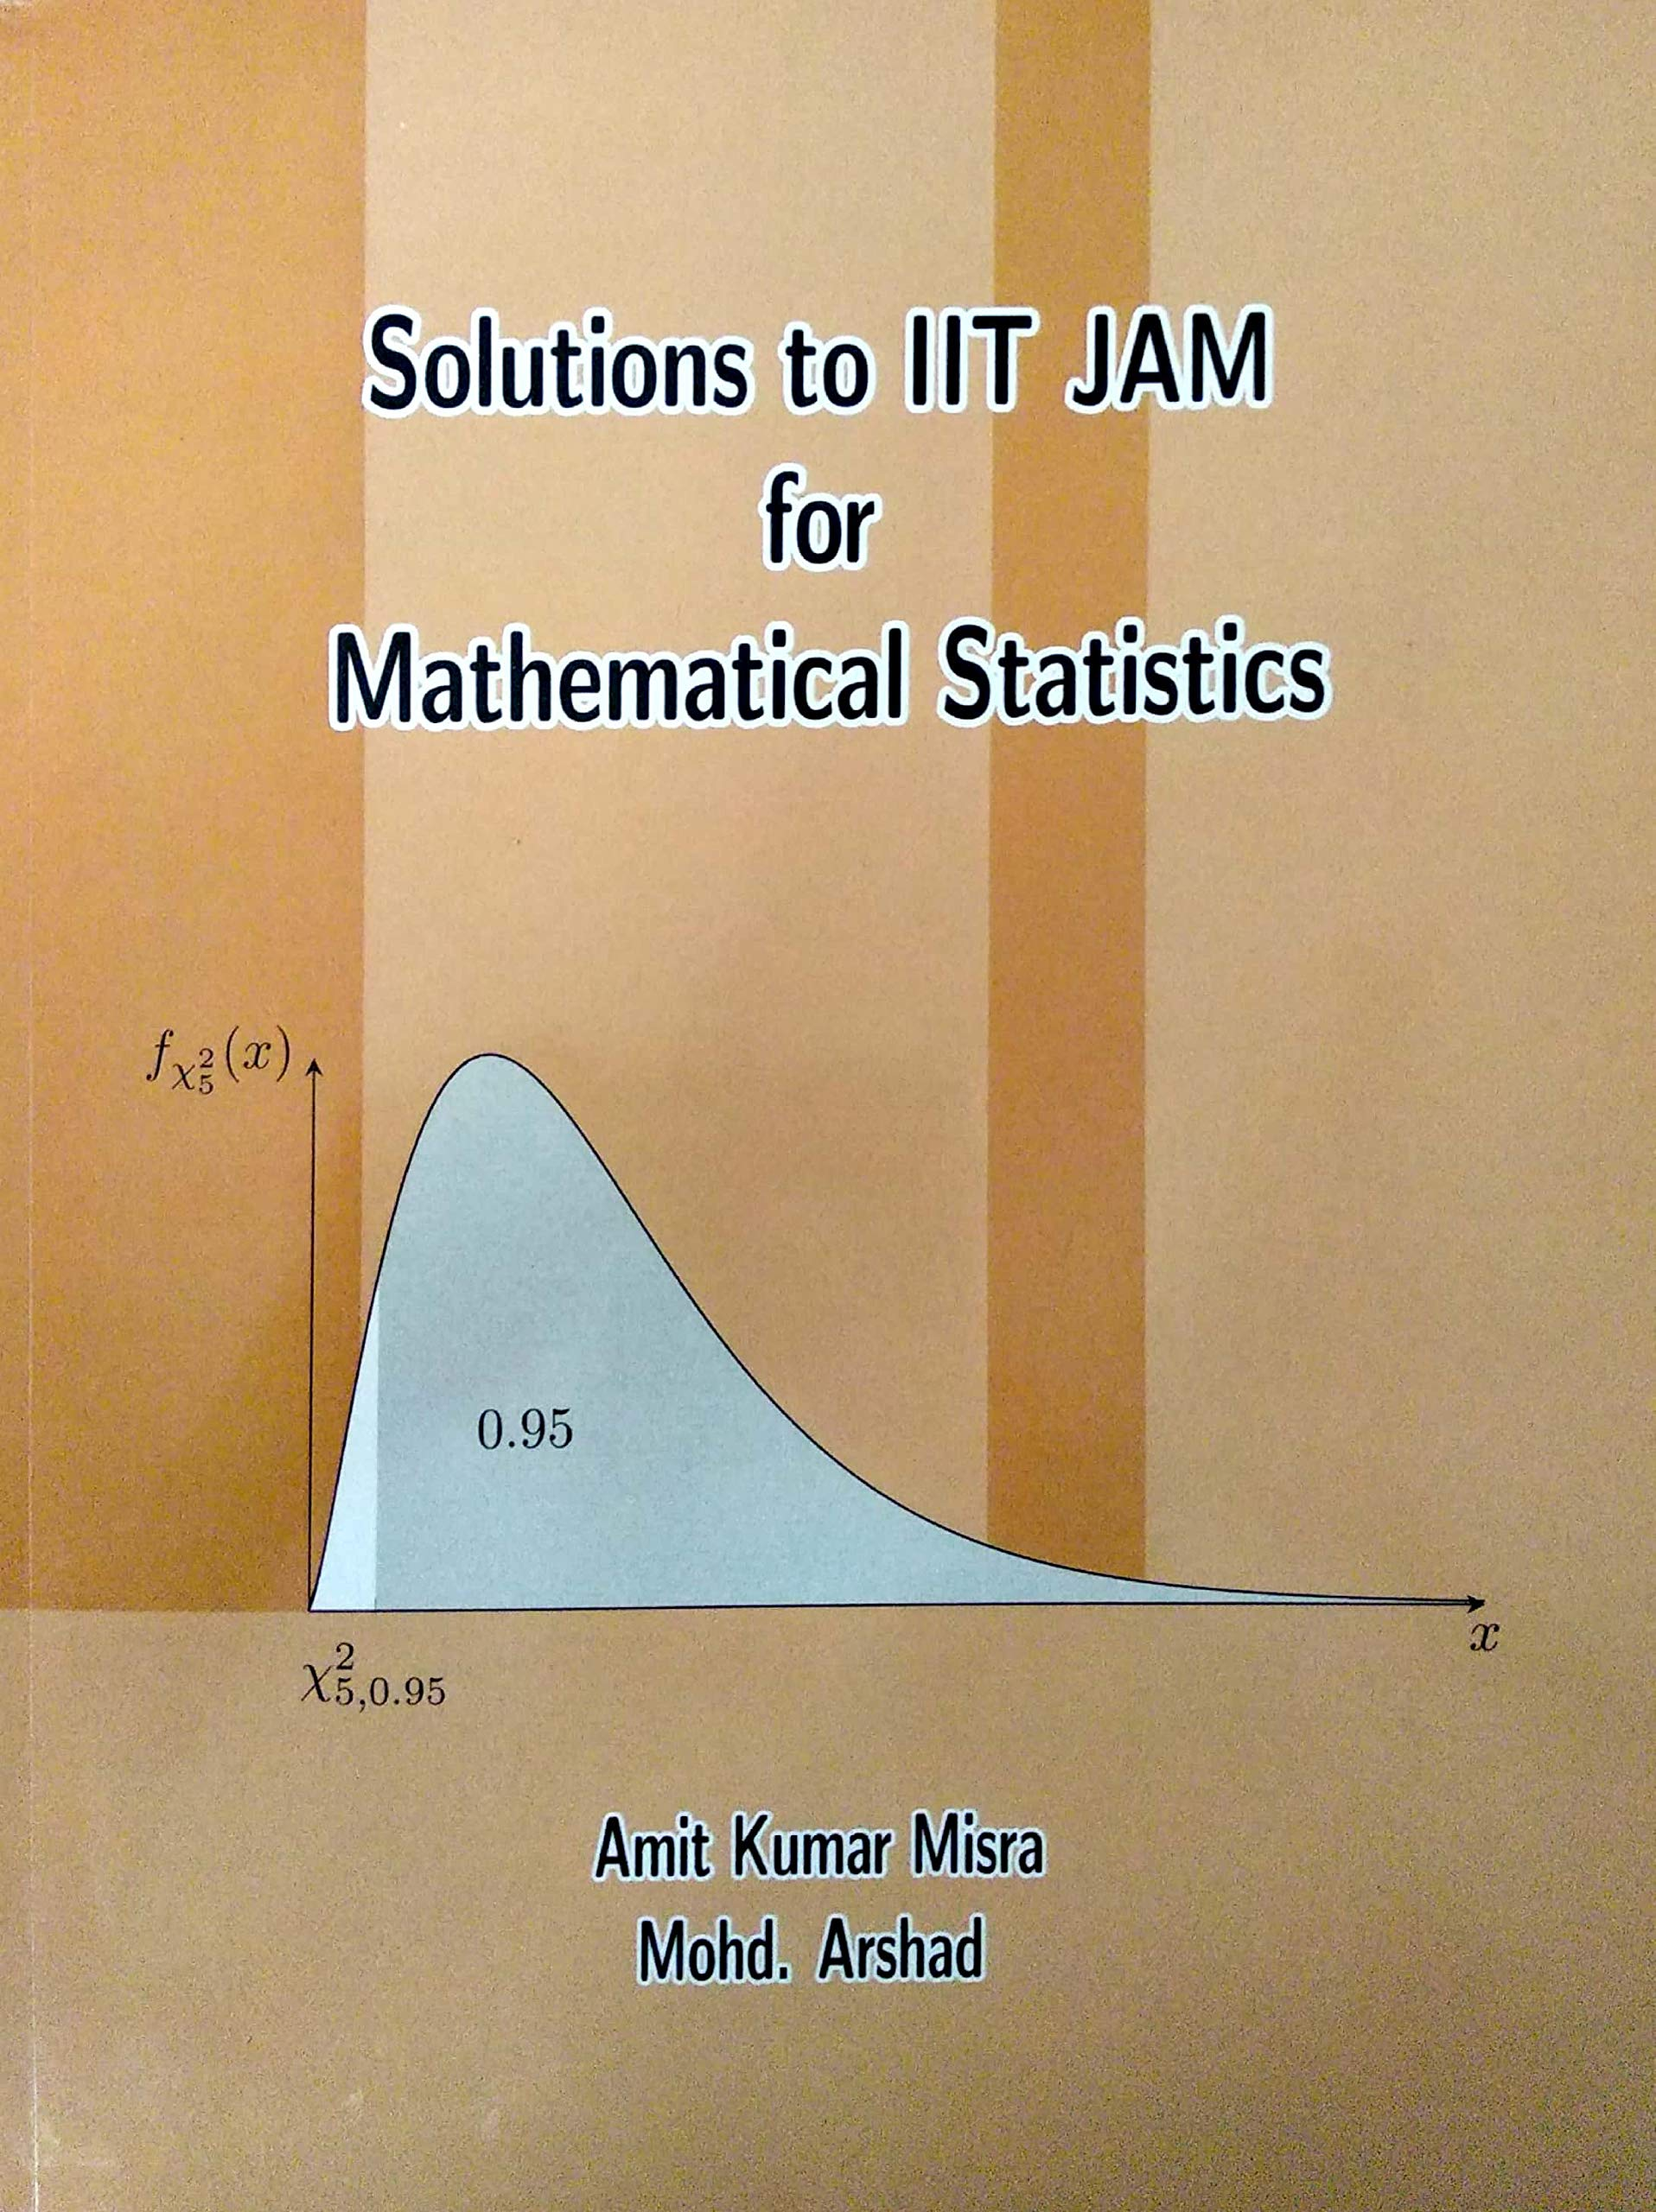 Solutions to IIT JAM for Mathematical Statistics